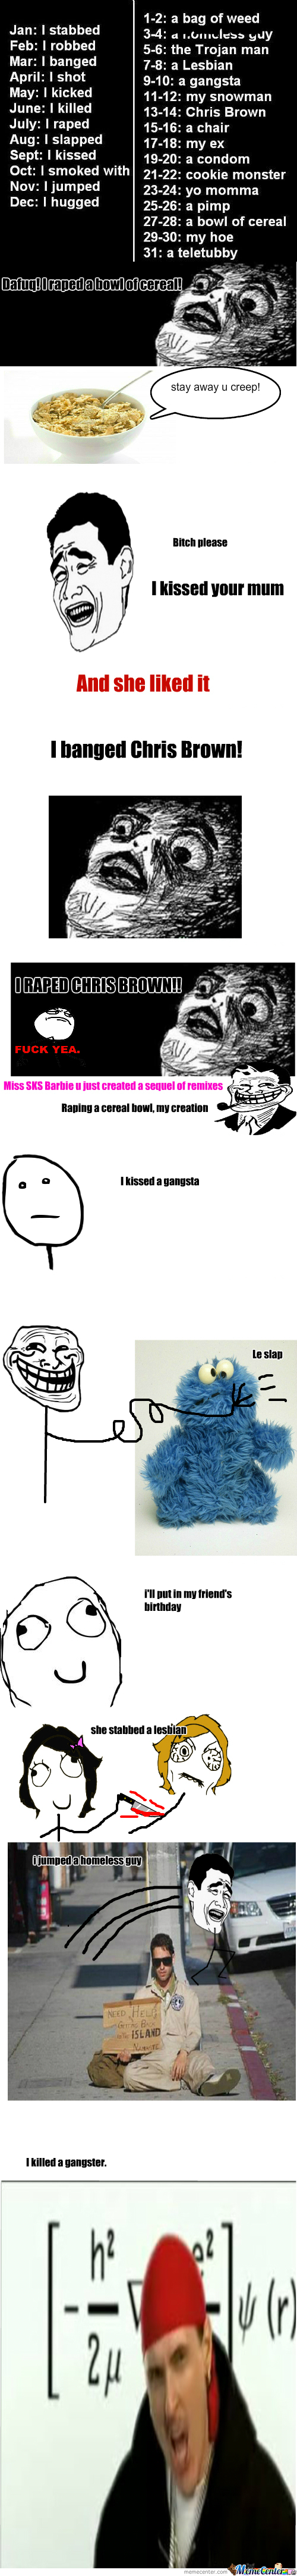 [RMX] [RMX] [RMX] [RMX] [RMX] [RMX] [RMX] [RMX] [RMX] [RMX] [RMX] I Robbed Cookie Monster How About You?